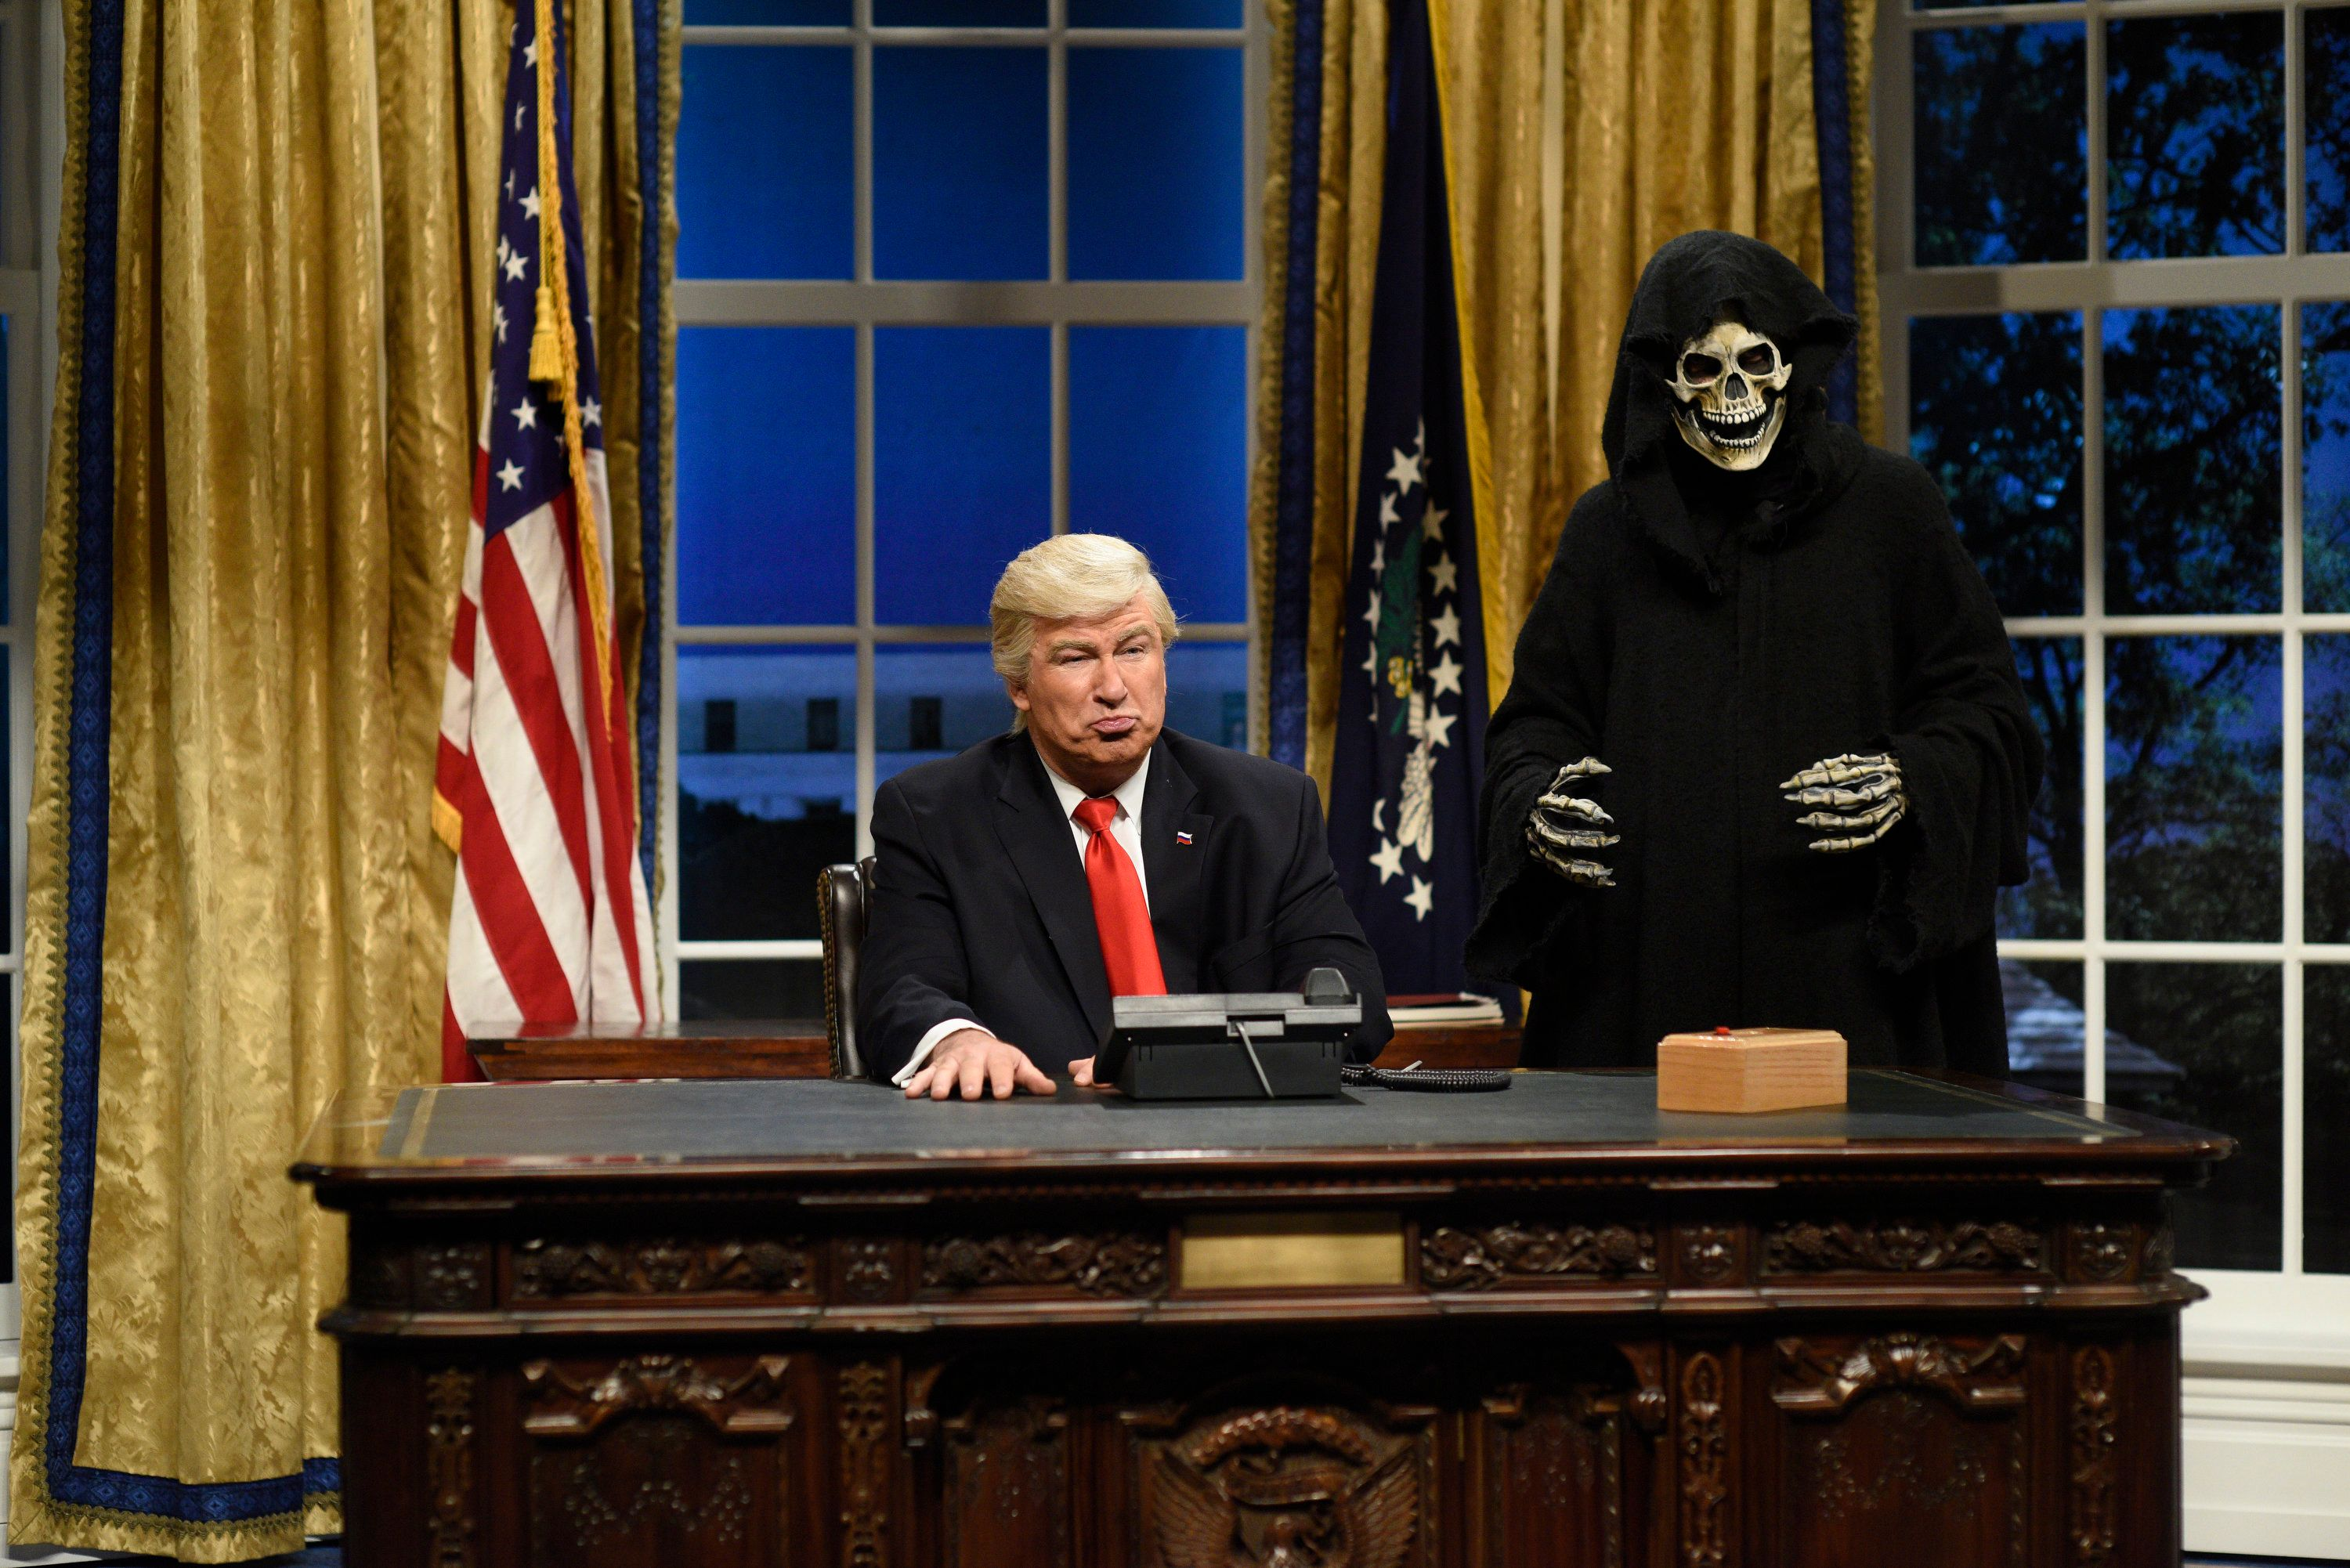 SATURDAY NIGHT LIVE -- 'Kristen Stewart' Episode 1717 -- Pictured: (l-r) Alec Baldwin as President Donald J. Trump, Mikey Day as advisor Steve Bannon during the Oval Office Cold Open on February 4th, 2017 -- (Photo by: Will Heath/NBC/NBCU Photo Bank via Getty Images)